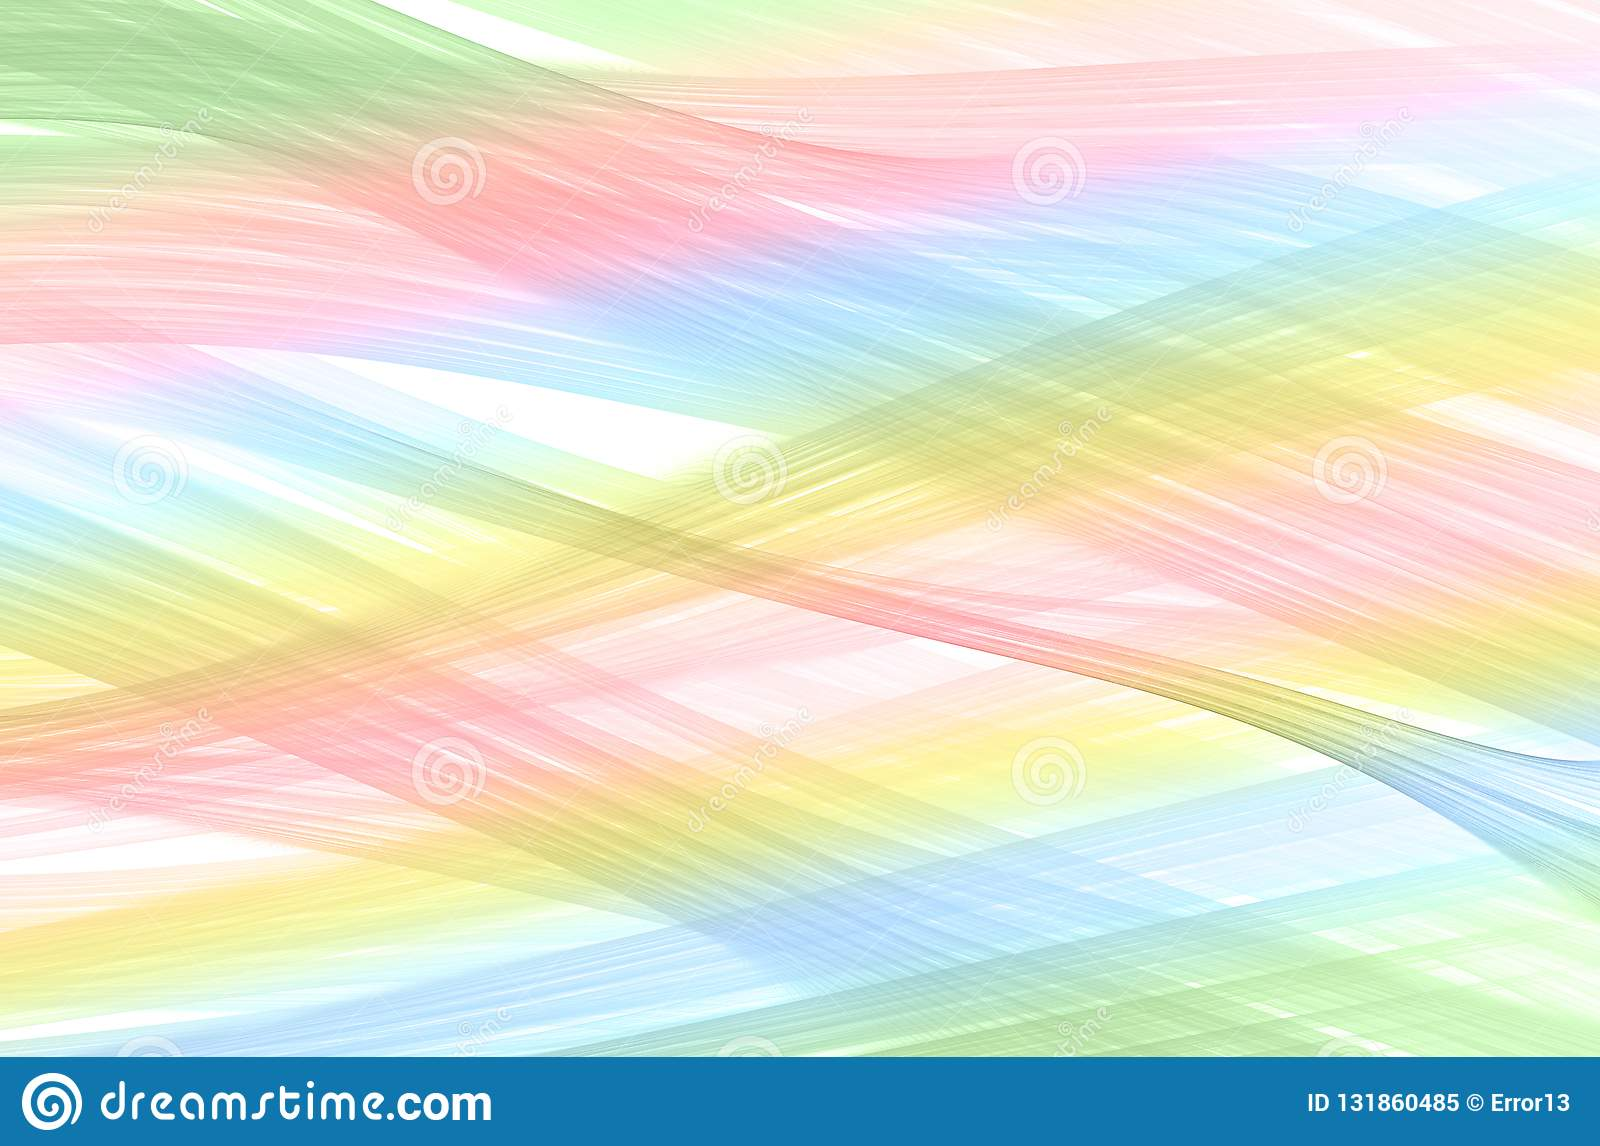 Light Color Texture In Pastel Colors Stock Illustration